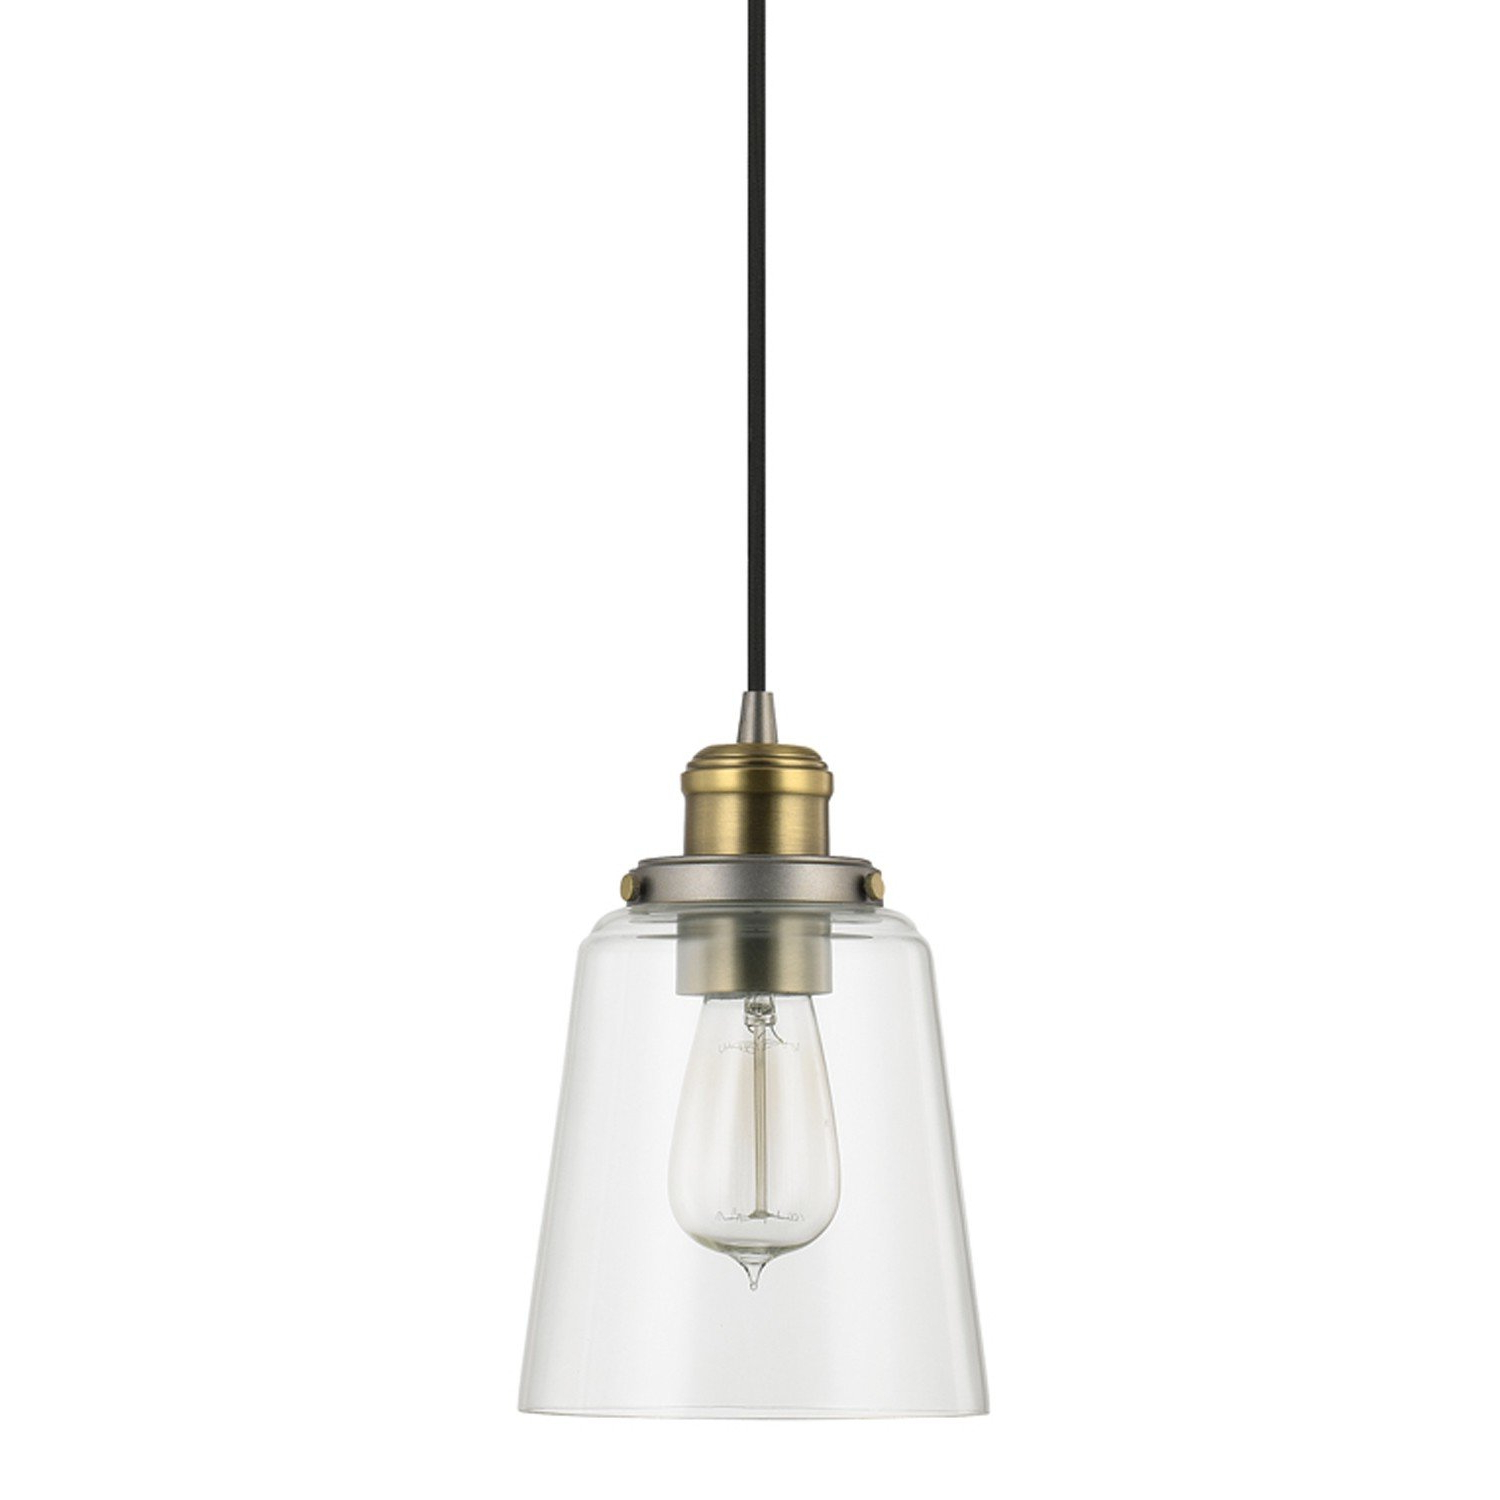 Lorenco 1 Light Single Bell Pendant Pertaining To Widely Used Sue 1 Light Single Jar Pendants (View 8 of 20)